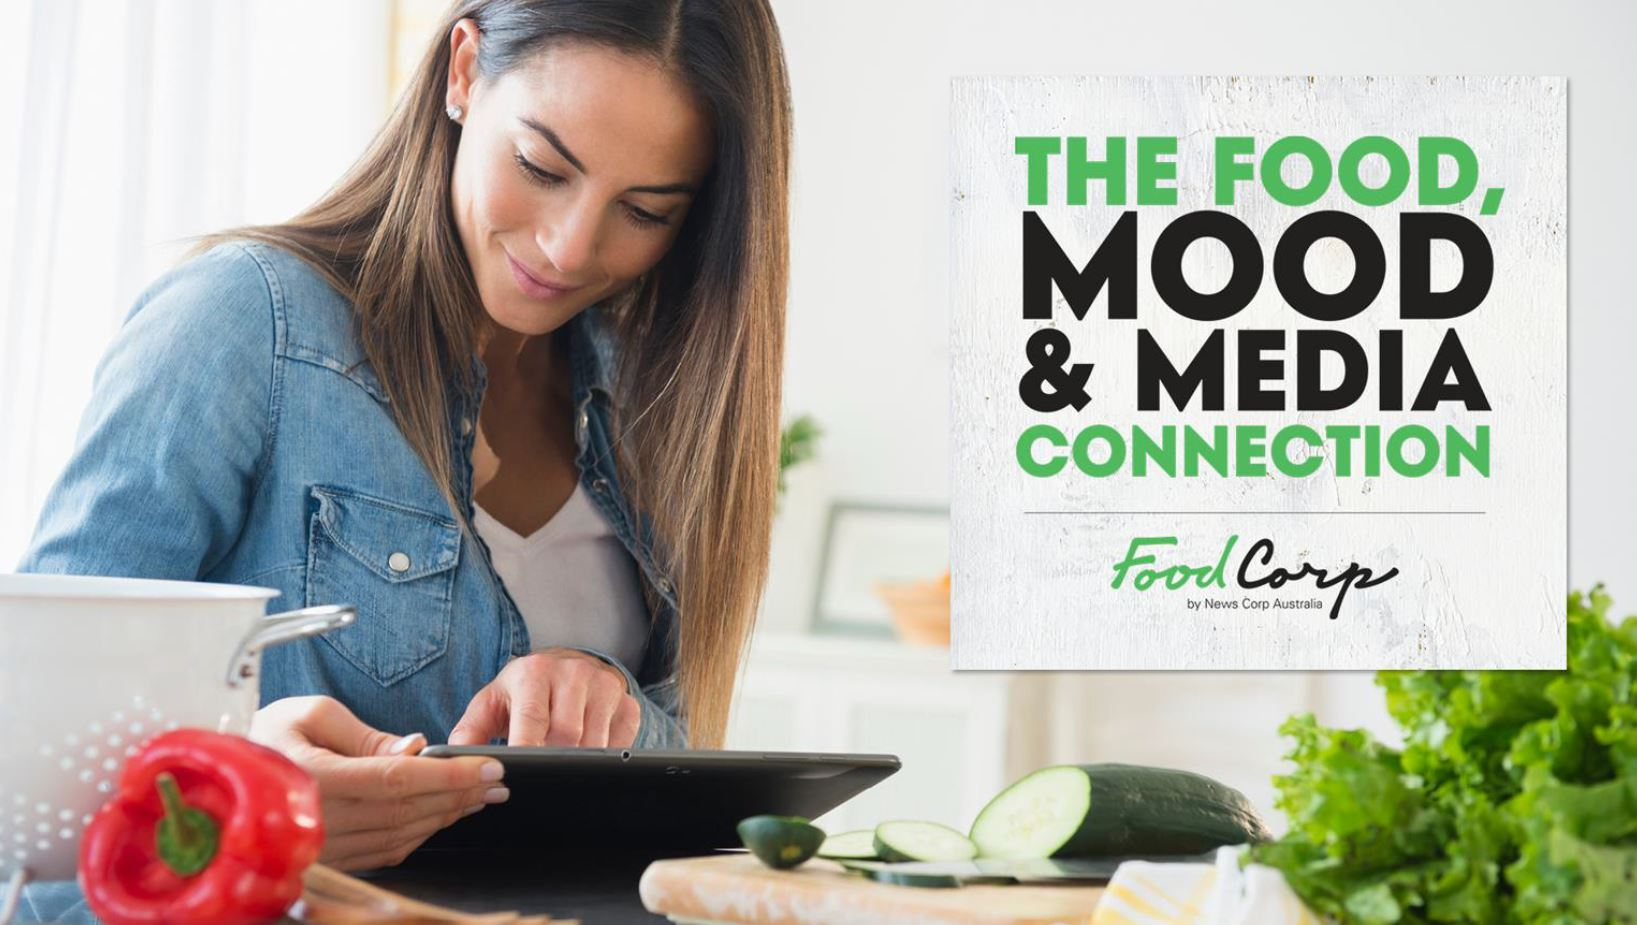 The Food, Mood and Media Connection